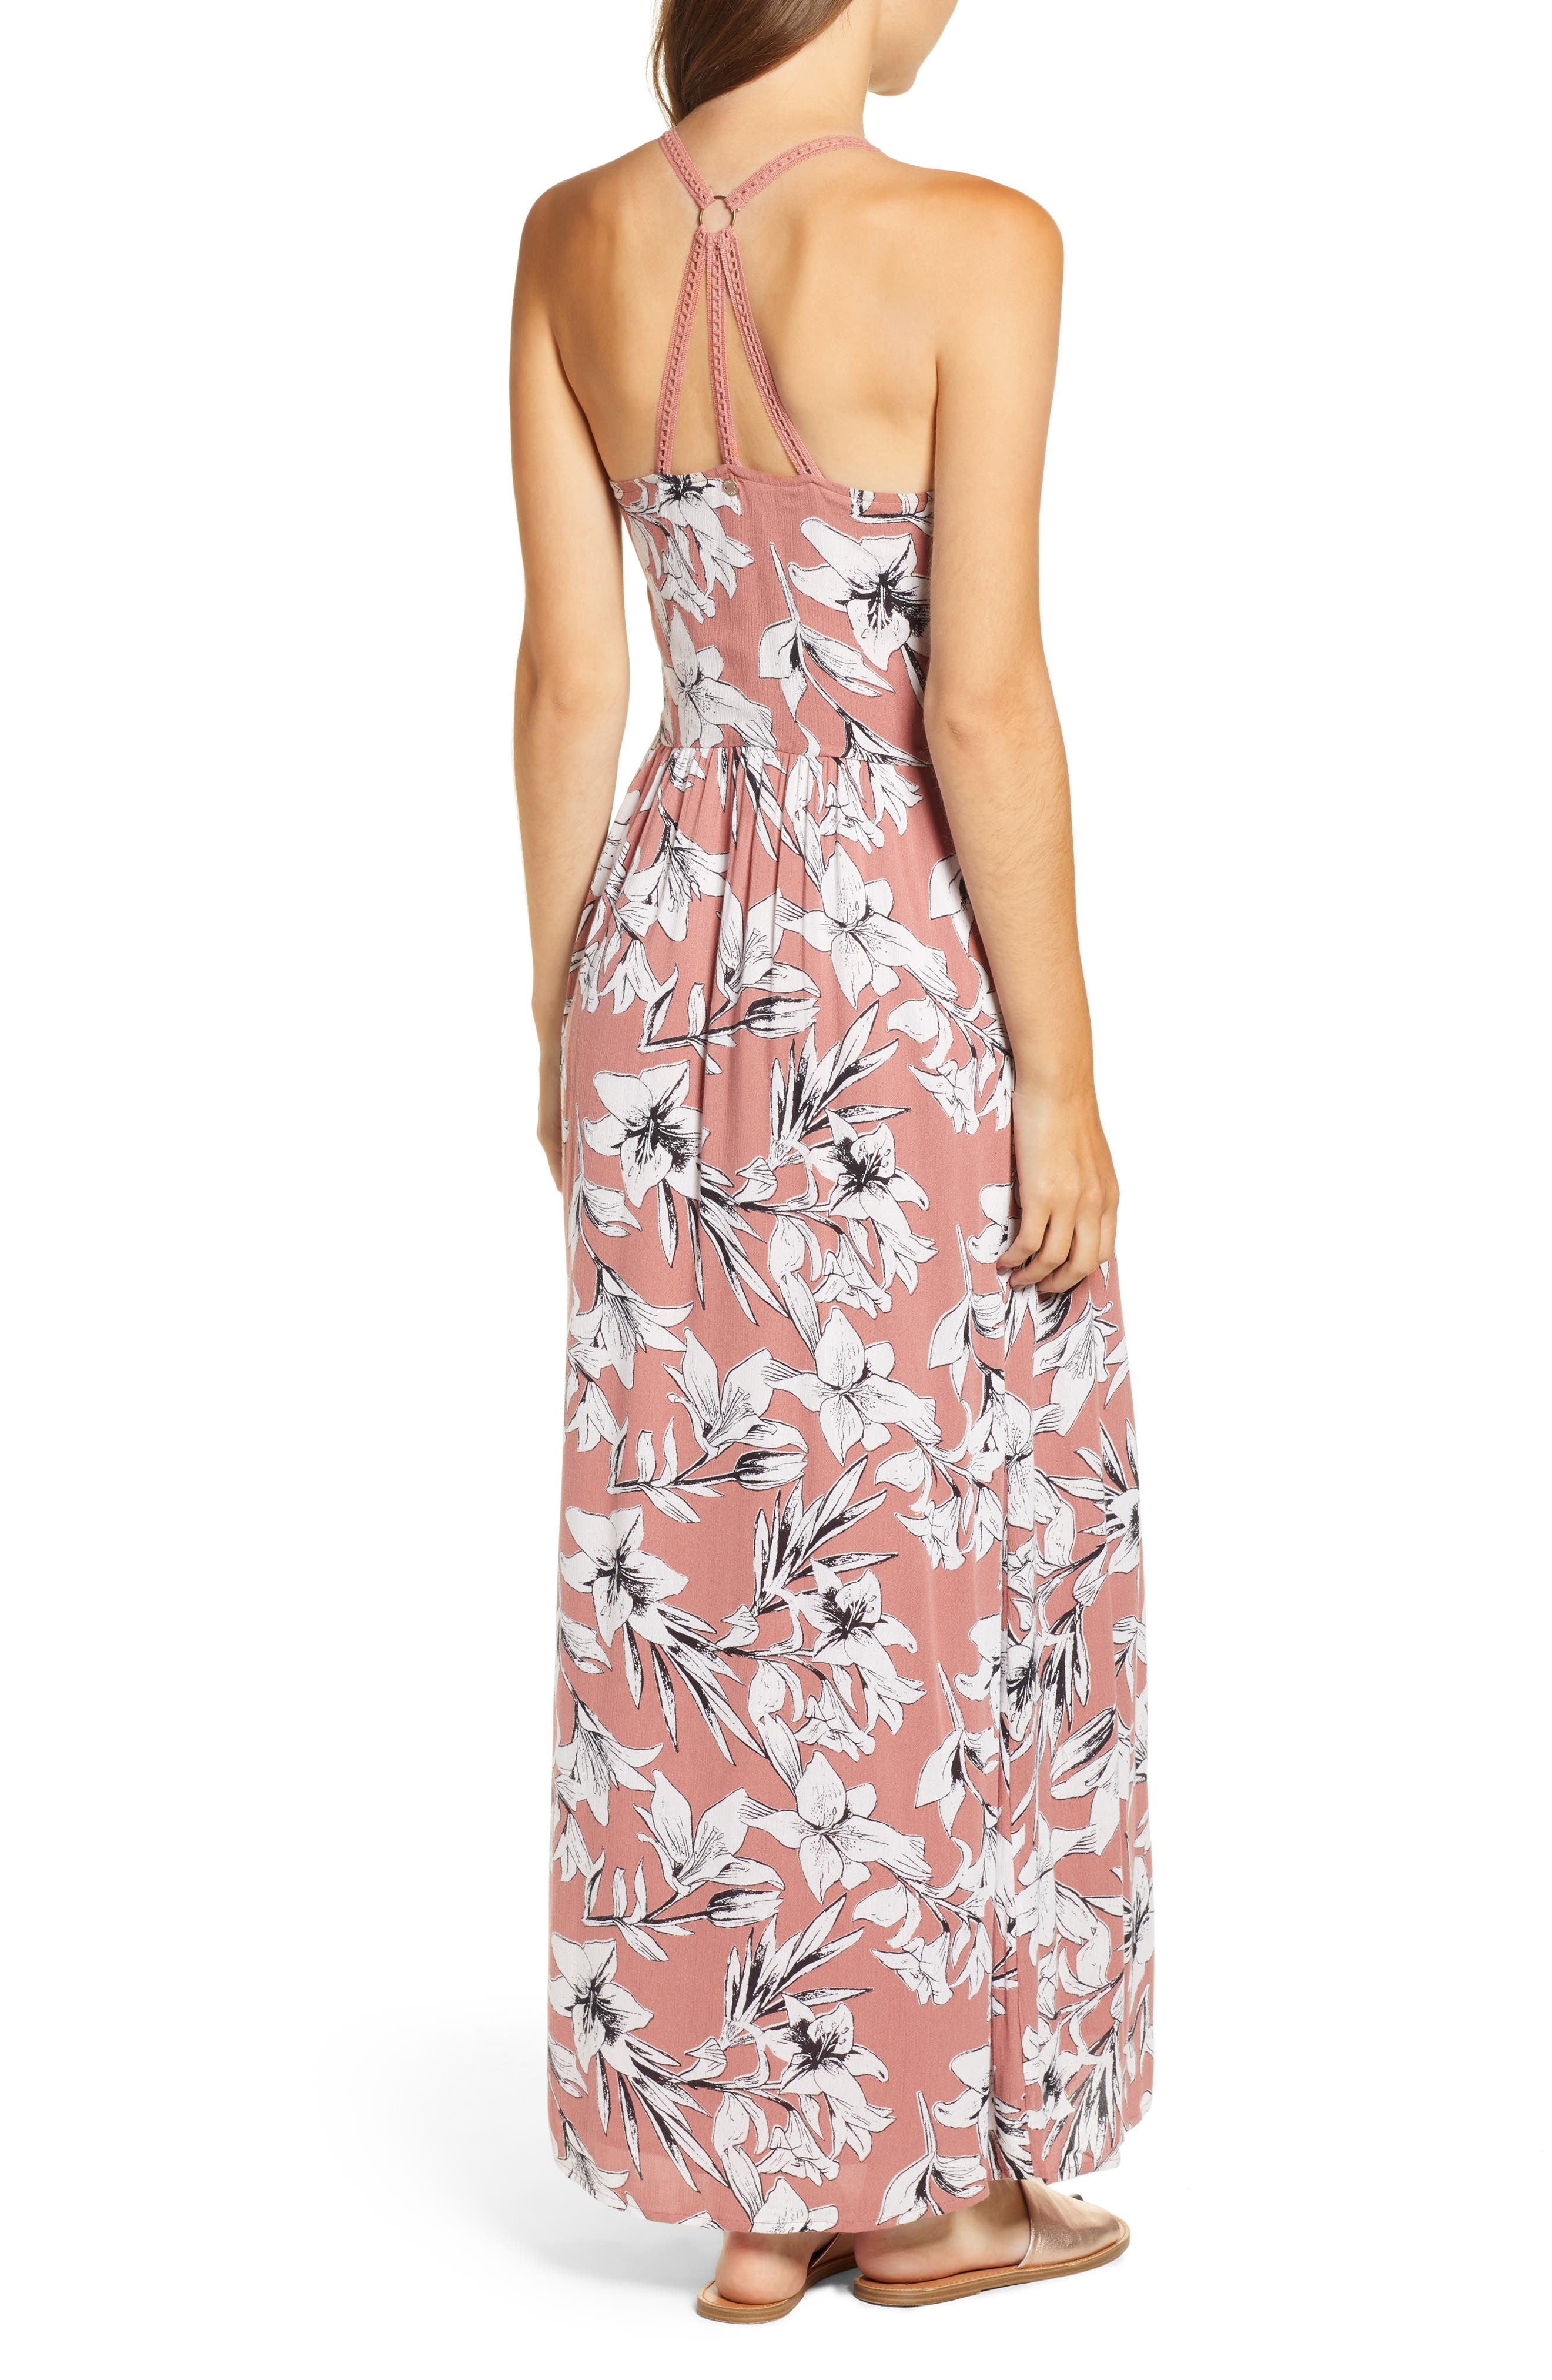 Pavement Border Maxi Dress,                             Alternate thumbnail 2, color,                             WITHERED ROSE LILY HOUSE